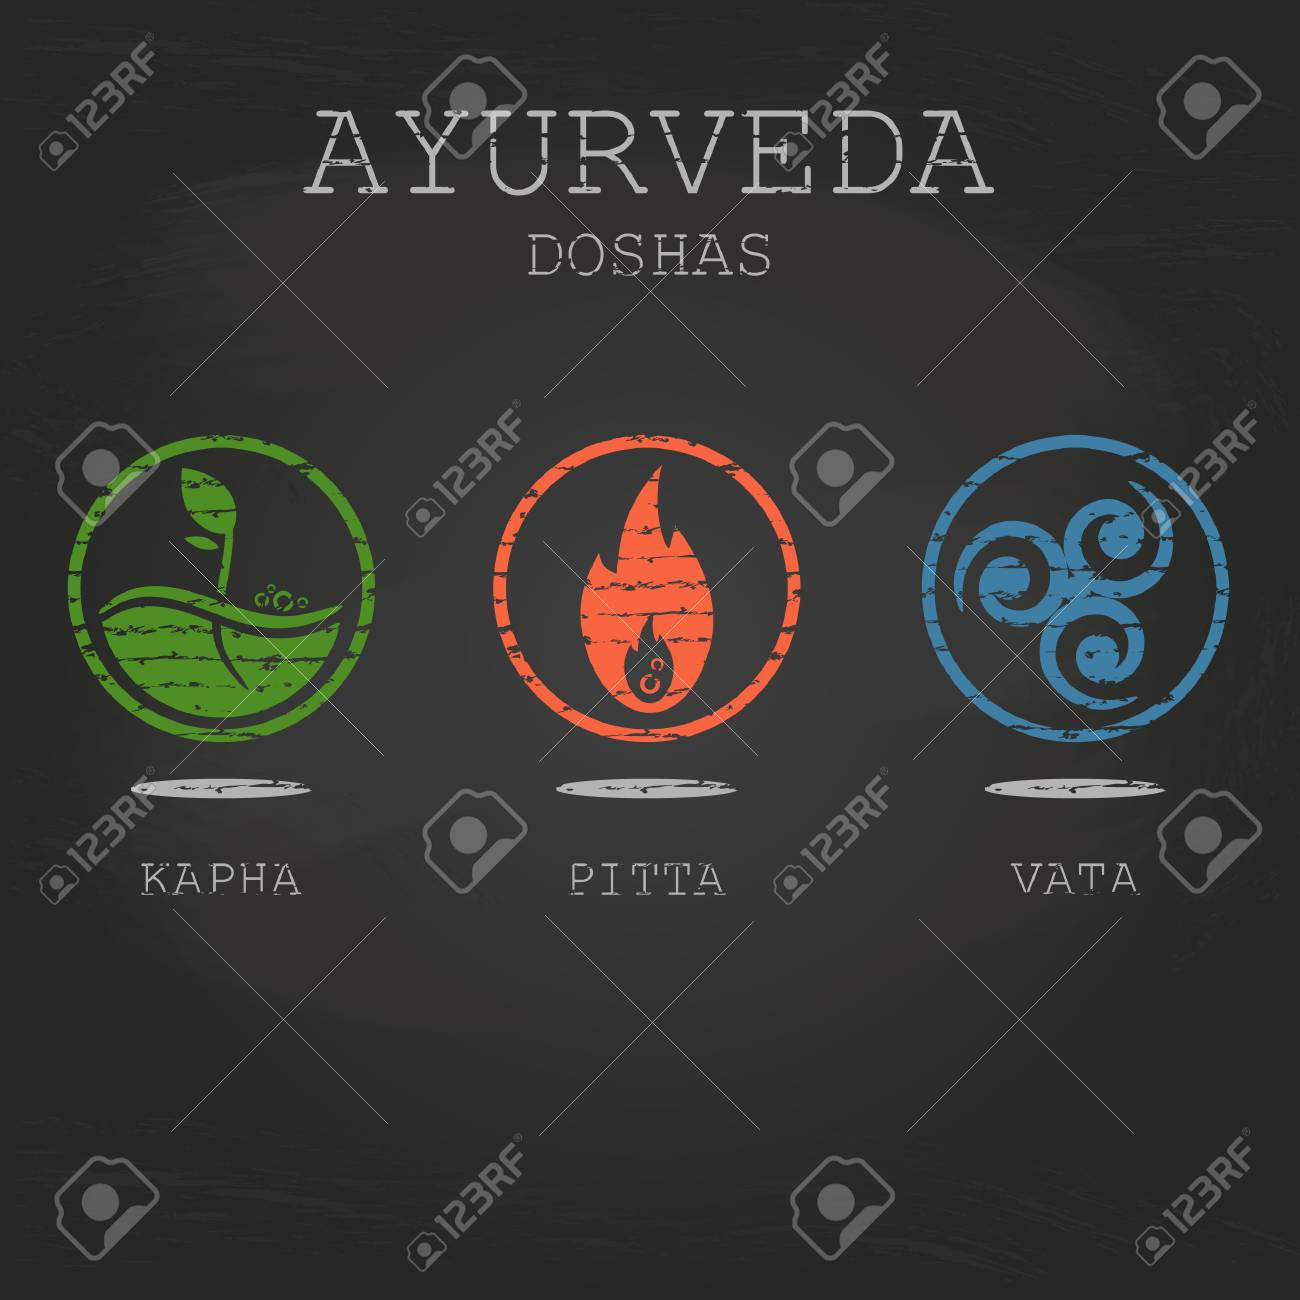 Ayurveda Doshas Vector Illustration On Black Chalkboard Background 1300x1300